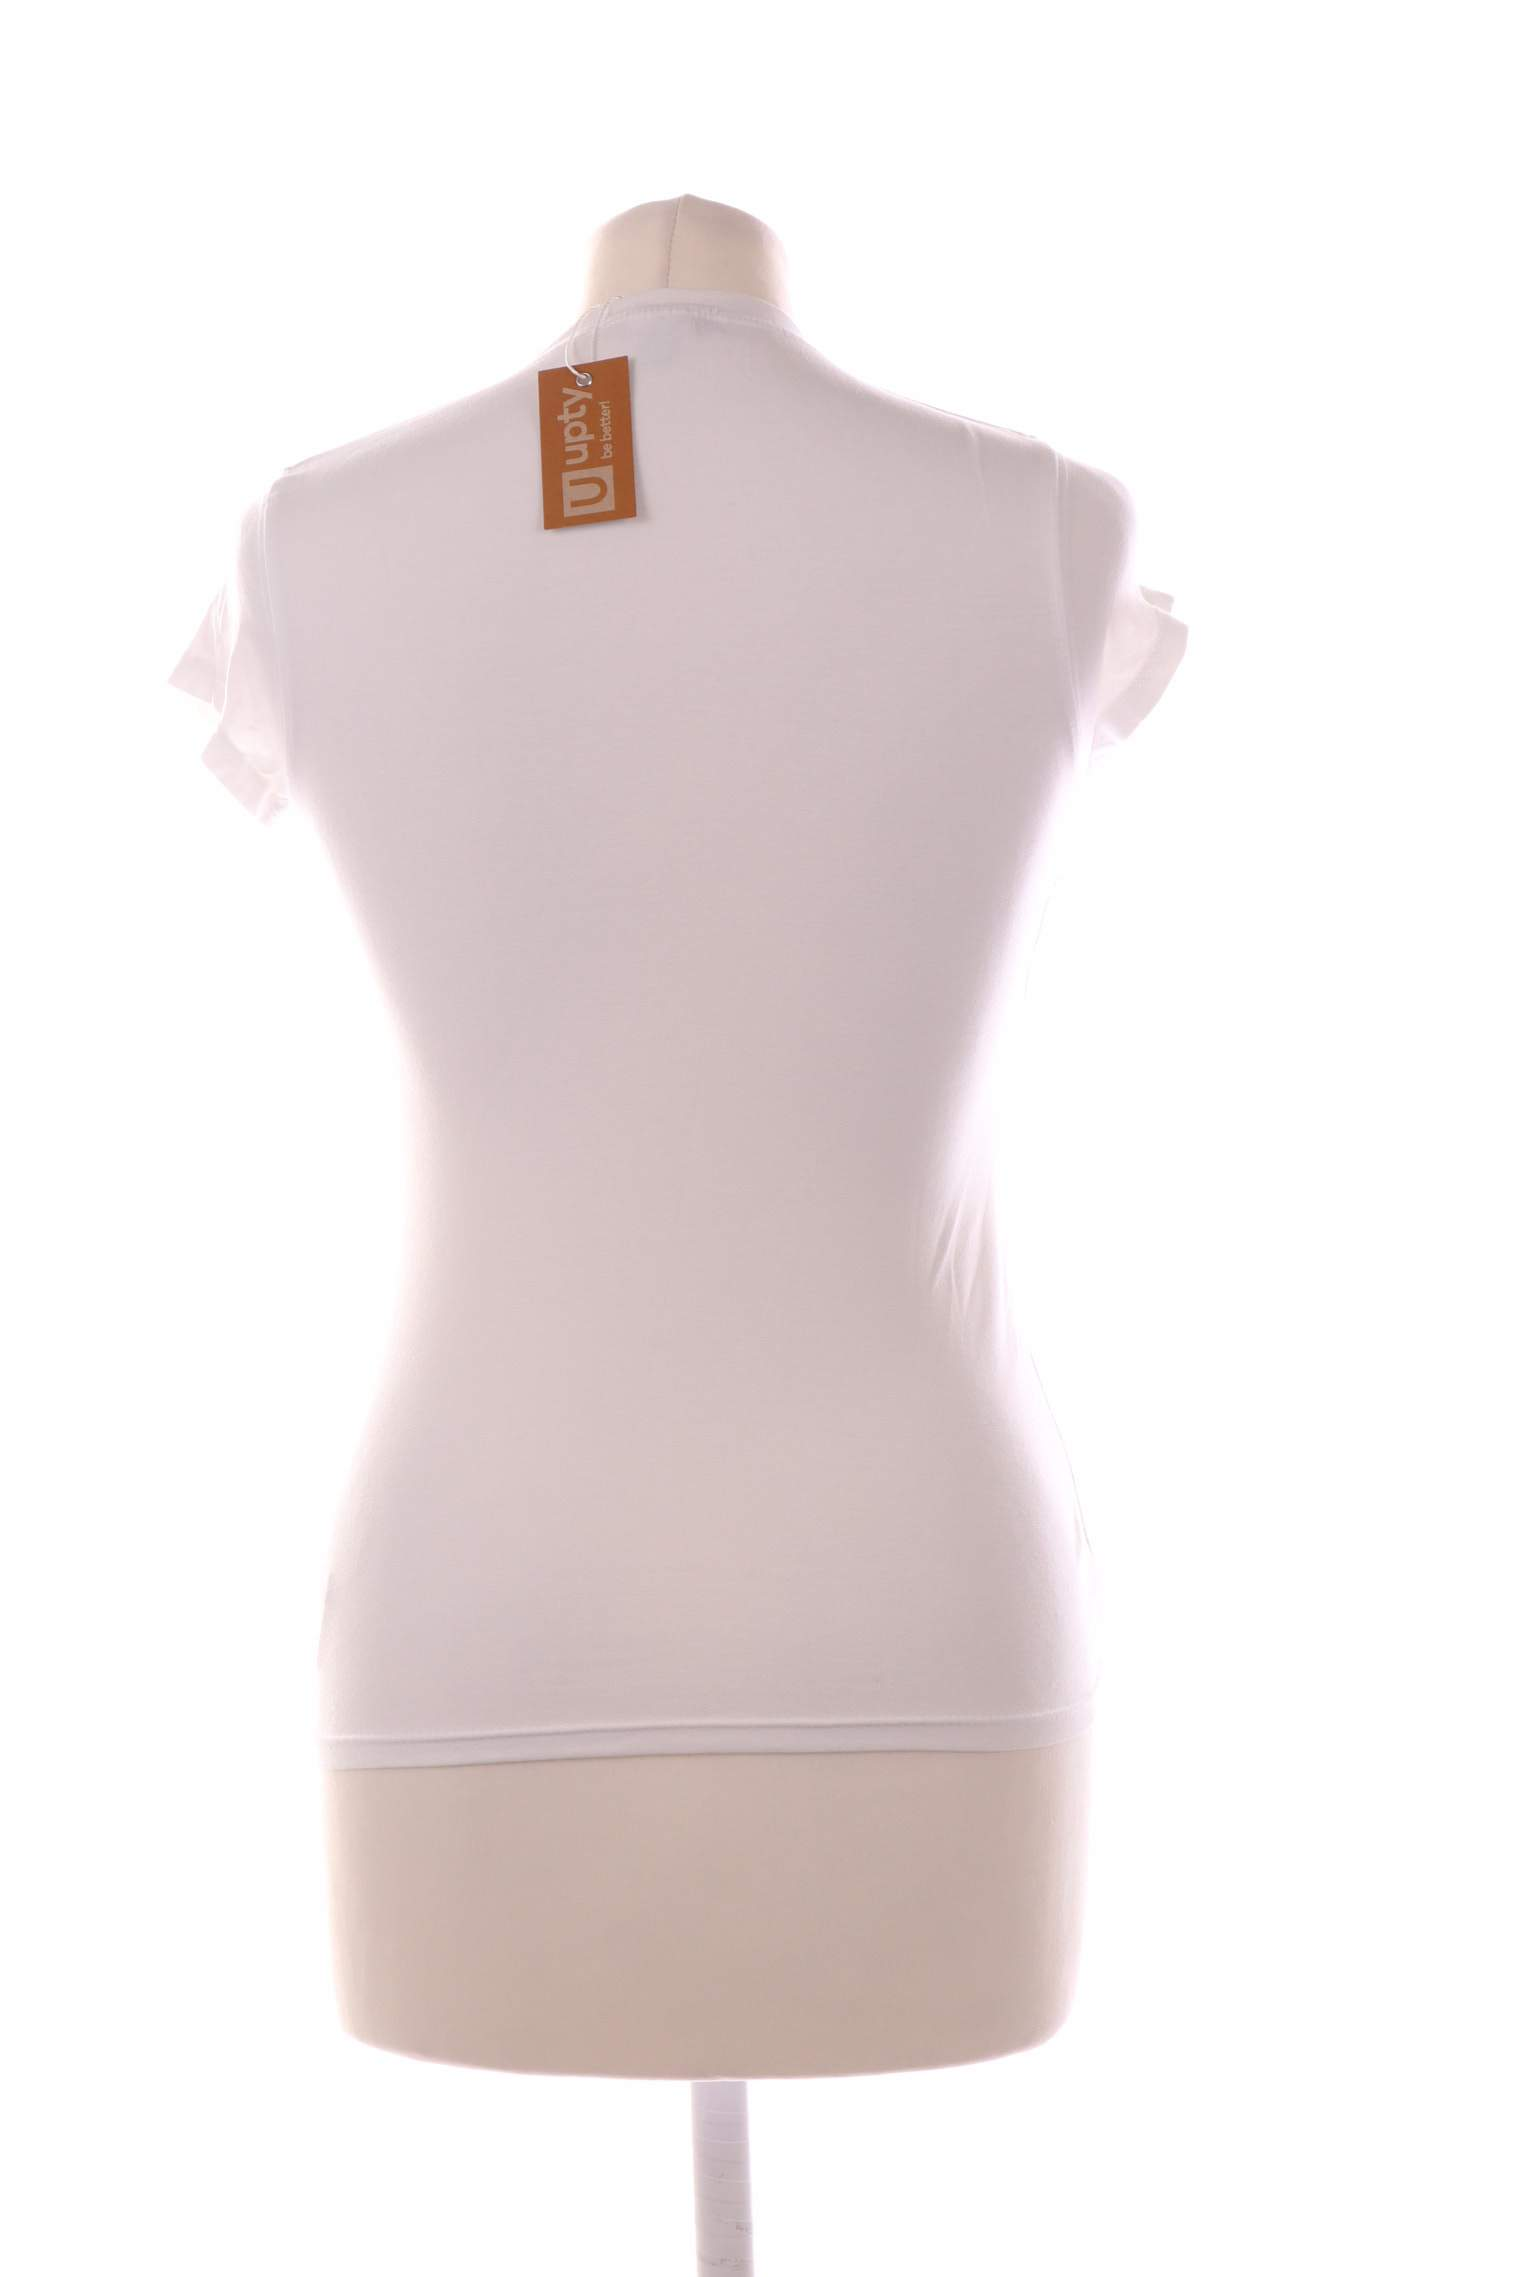 Extory Sport White Top